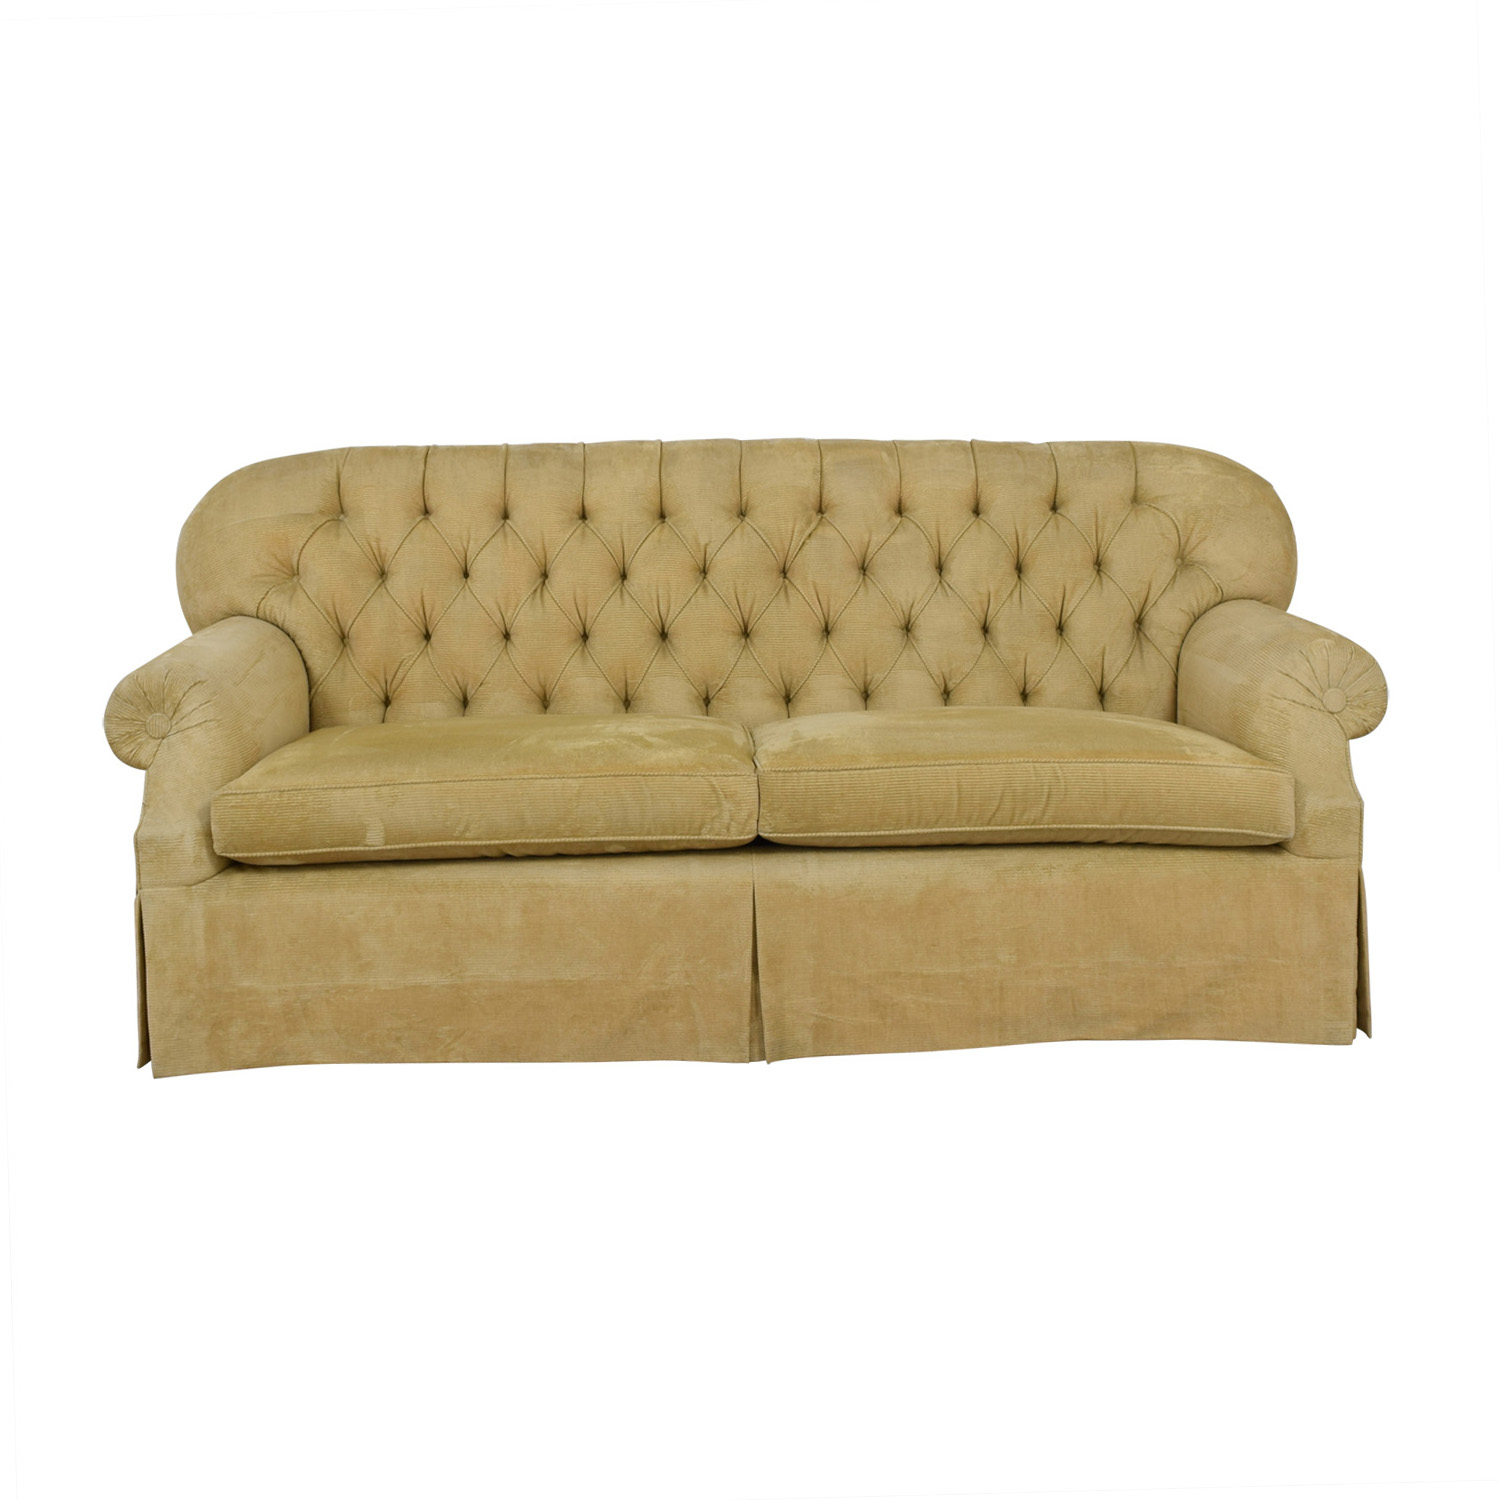 Furniture Masters Furniture Masters Beige Tufted Two-Cushion Sofa dimensions